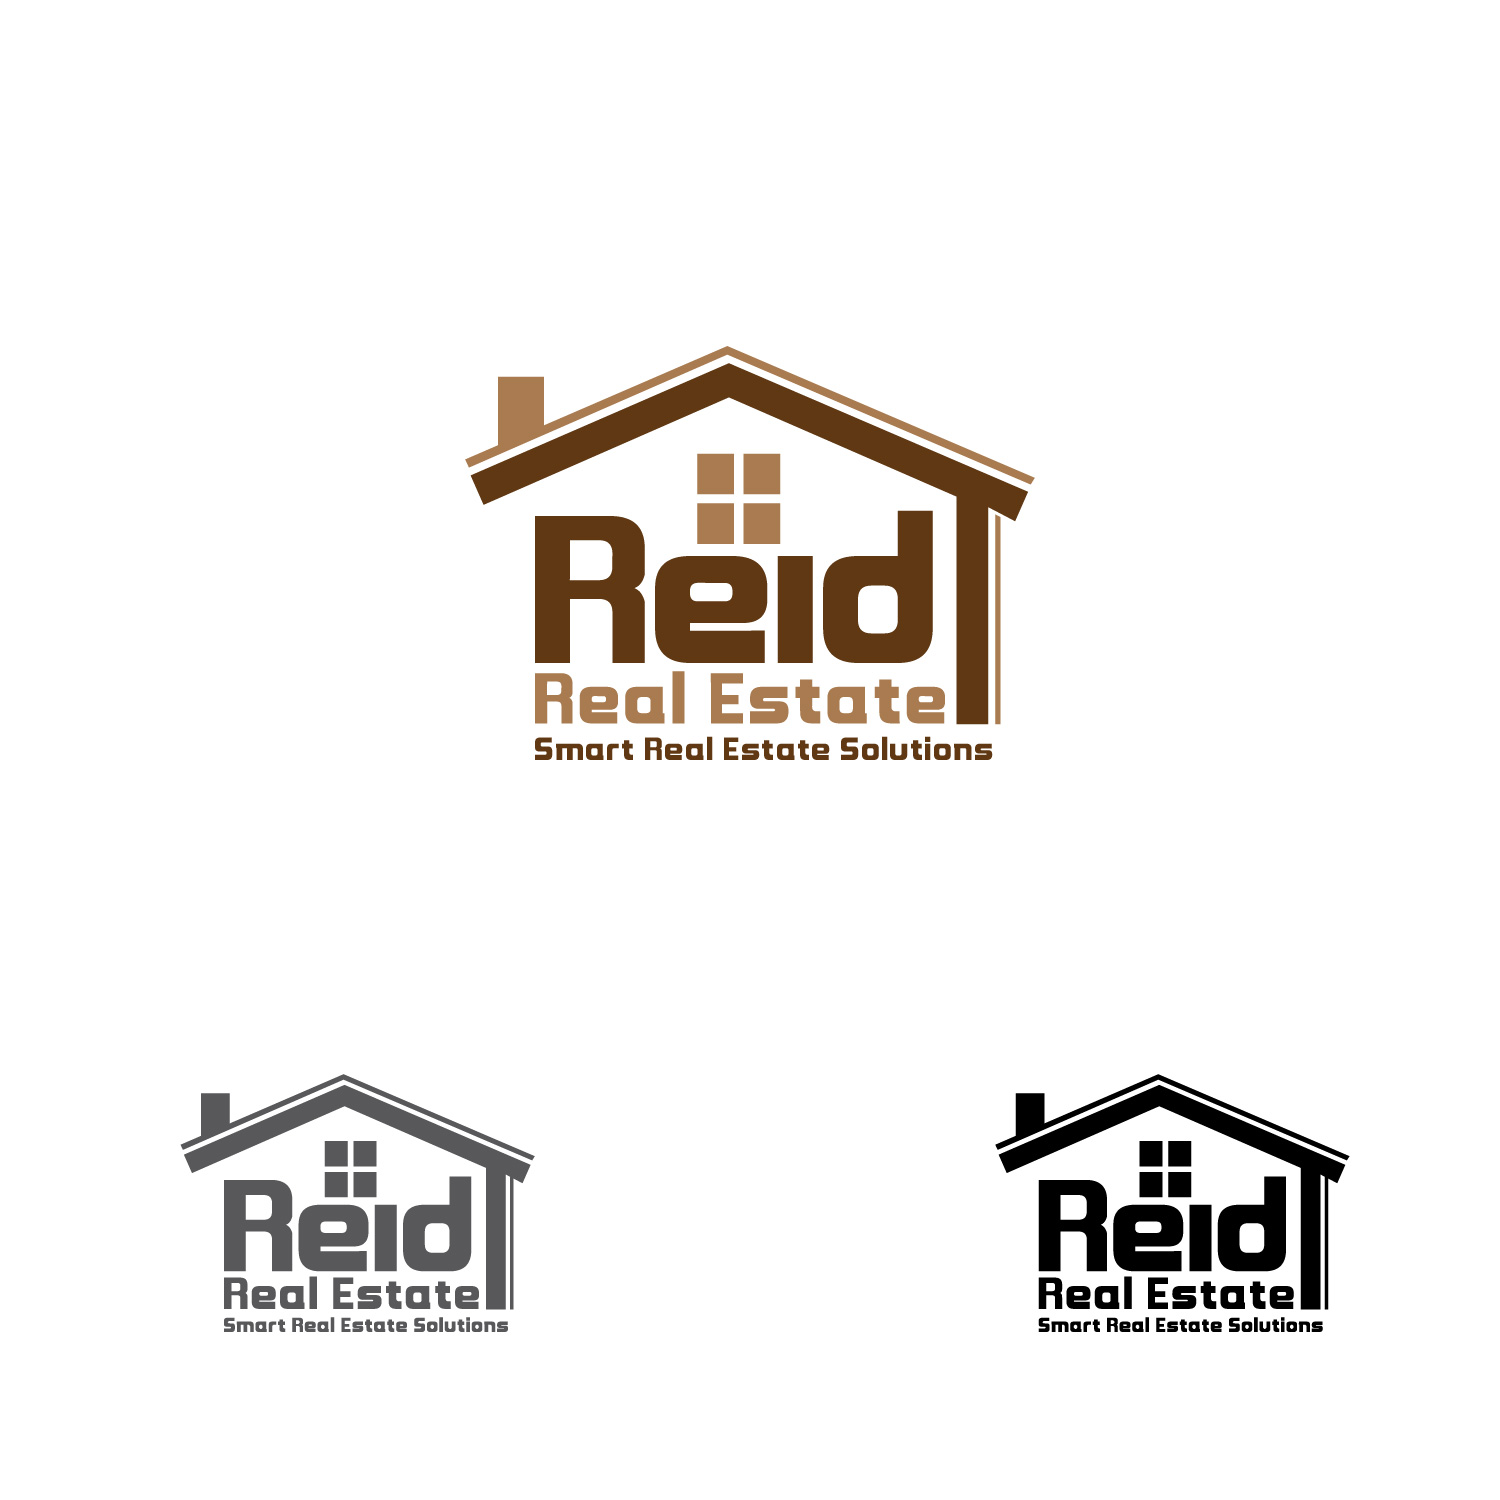 Logo Design by lagalag - Entry No. 29 in the Logo Design Contest Artistic Logo Design for Hadden Properties.